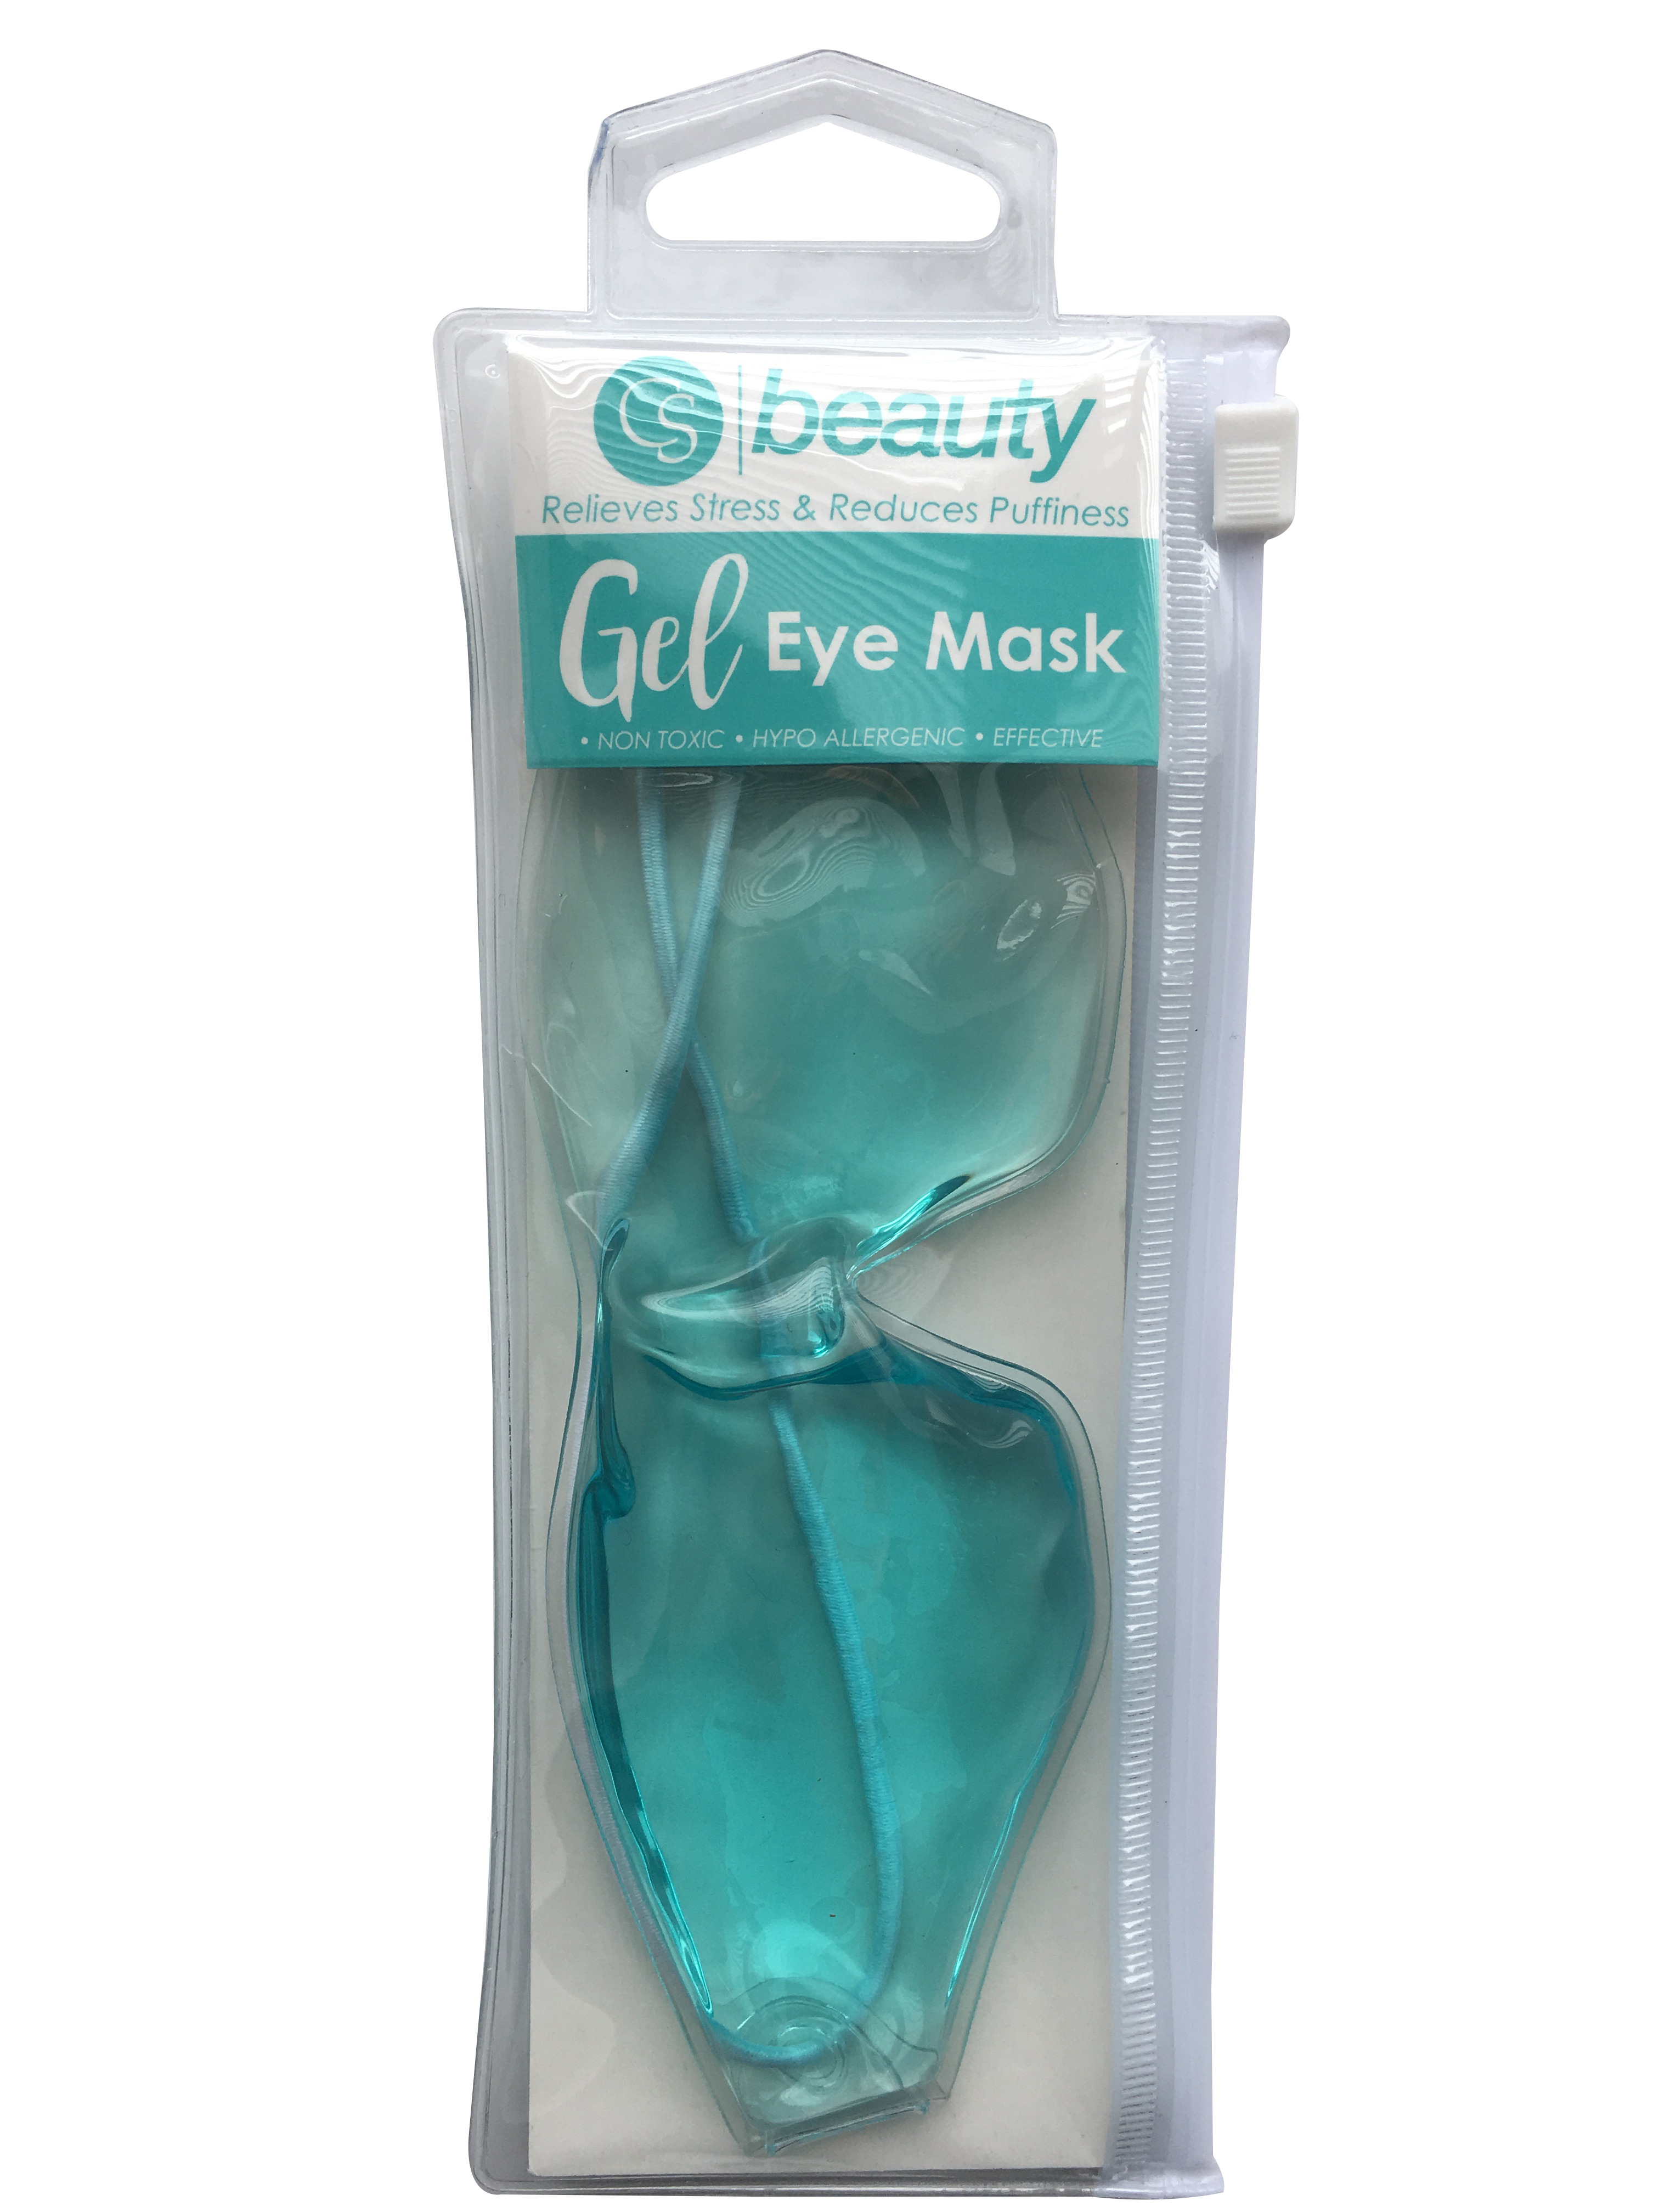 S2048 CS BEAUTY GEL EYE MASK